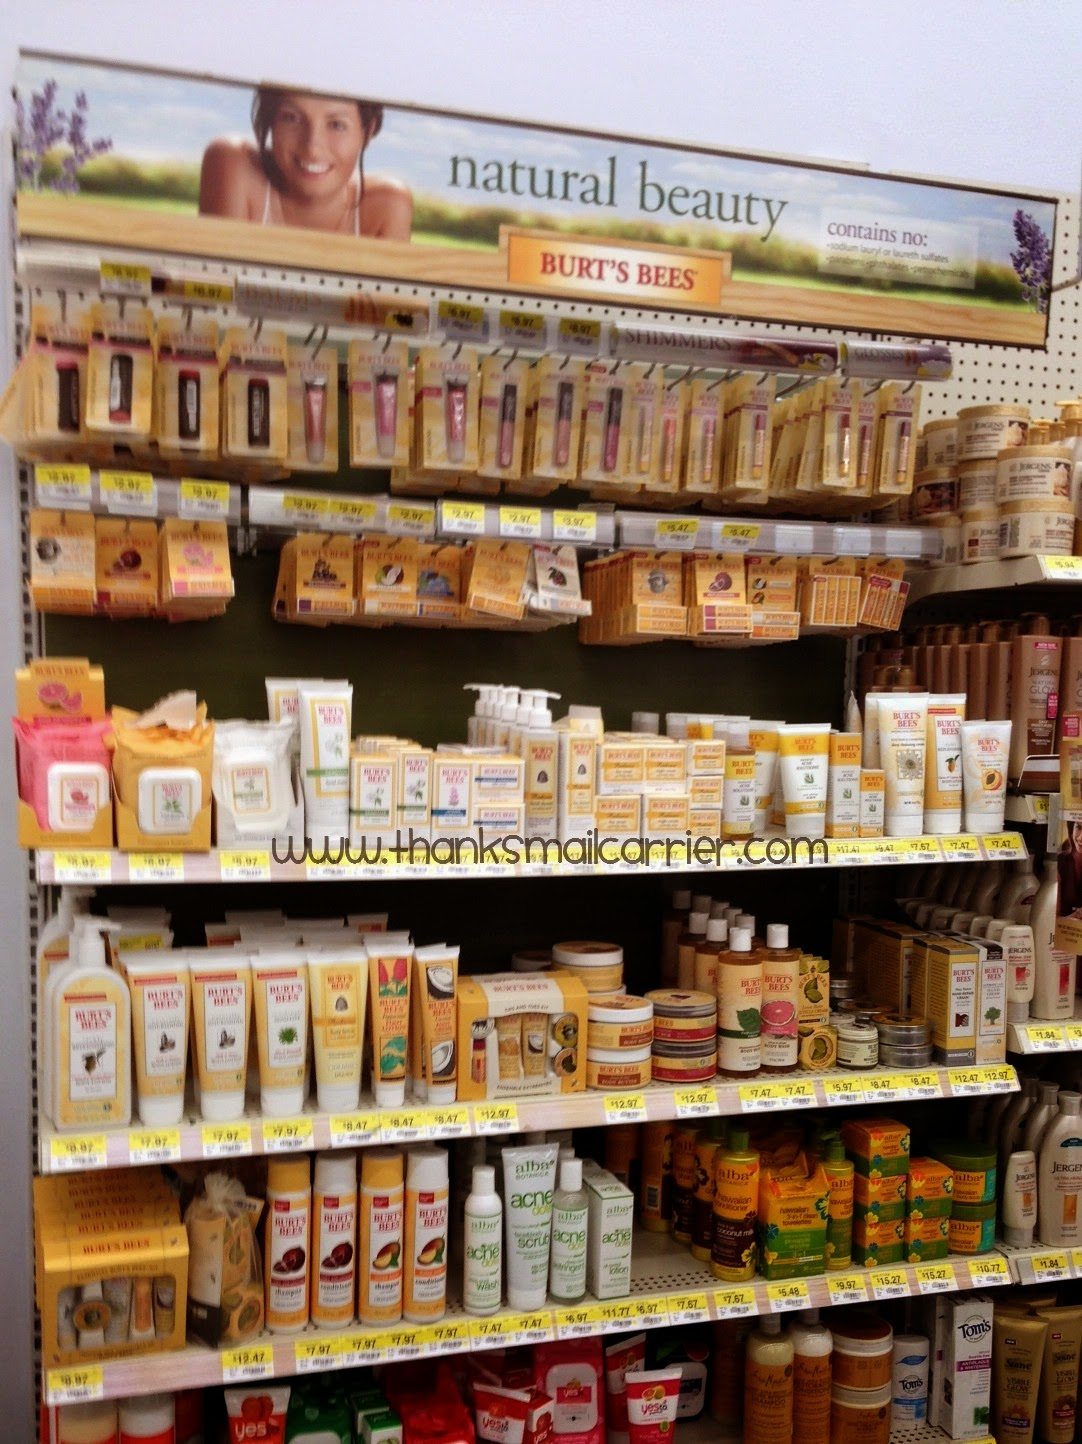 Burt's Bees display